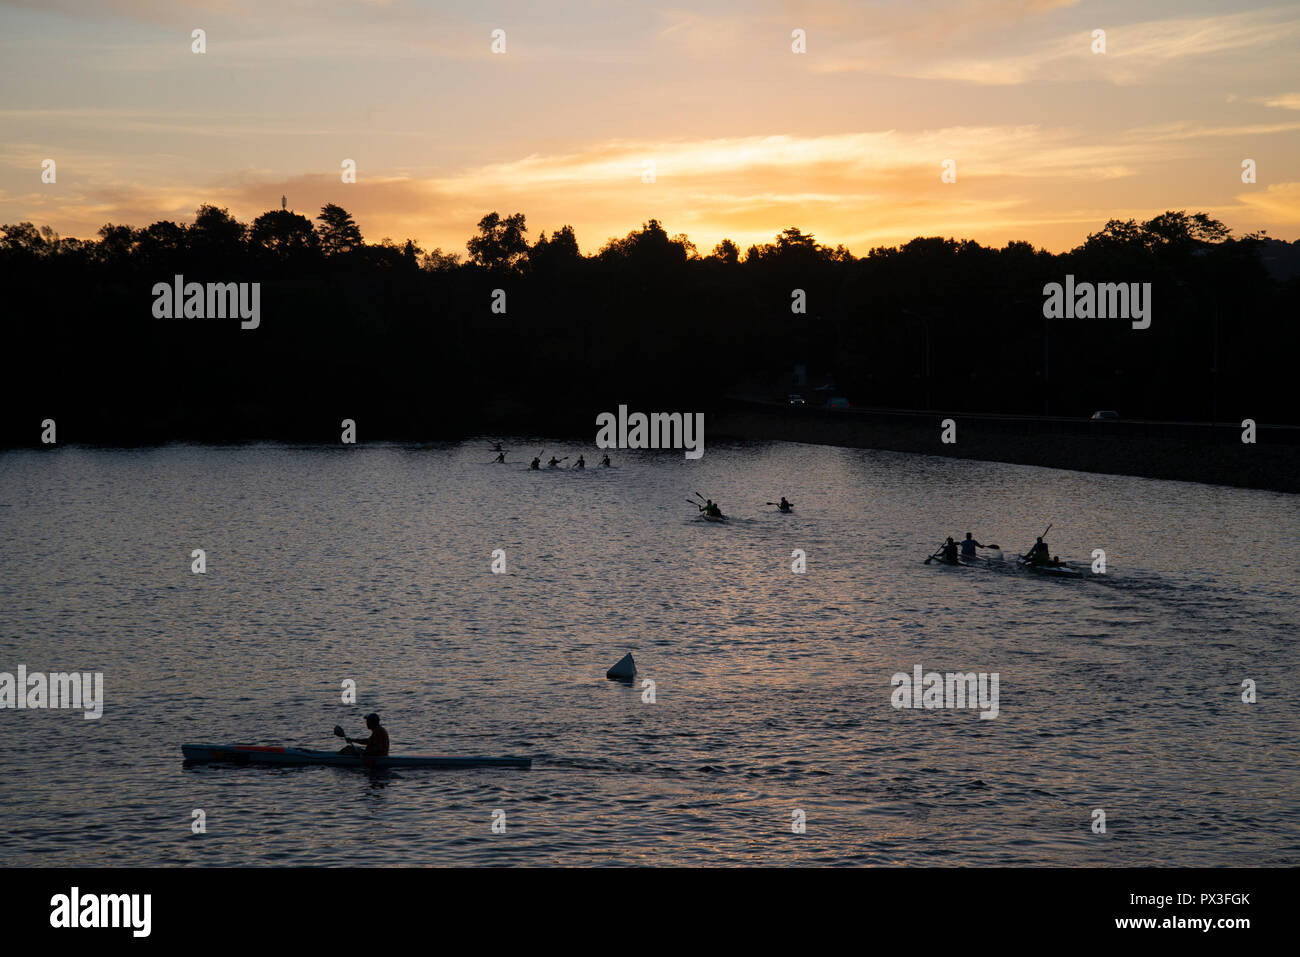 Johannesburg, South Africa, 18 October, 2018. Paddlers are seen on Emmarentia Dam as dusk settles over Johannesburg. The dam is located a few kilometers from the city center. It's a popular destination for athletes and families and is used for paddling canoes, sailing small boats and rowing. Credit: Eva-Lotta Jansson/Alamy Live News - Stock Image